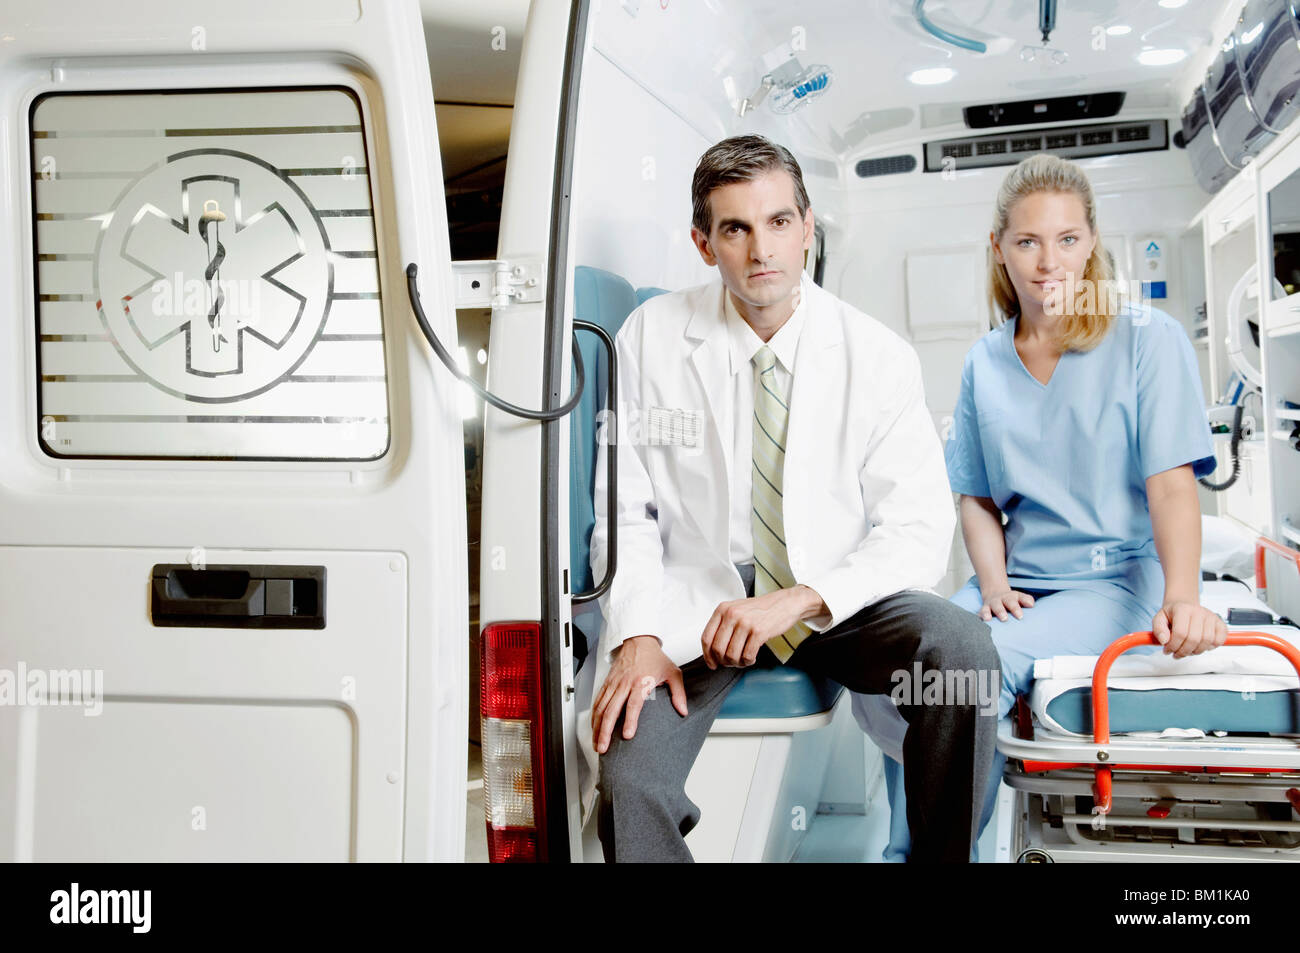 Doctor sitting with a female nurse in an ambulance - Stock Image